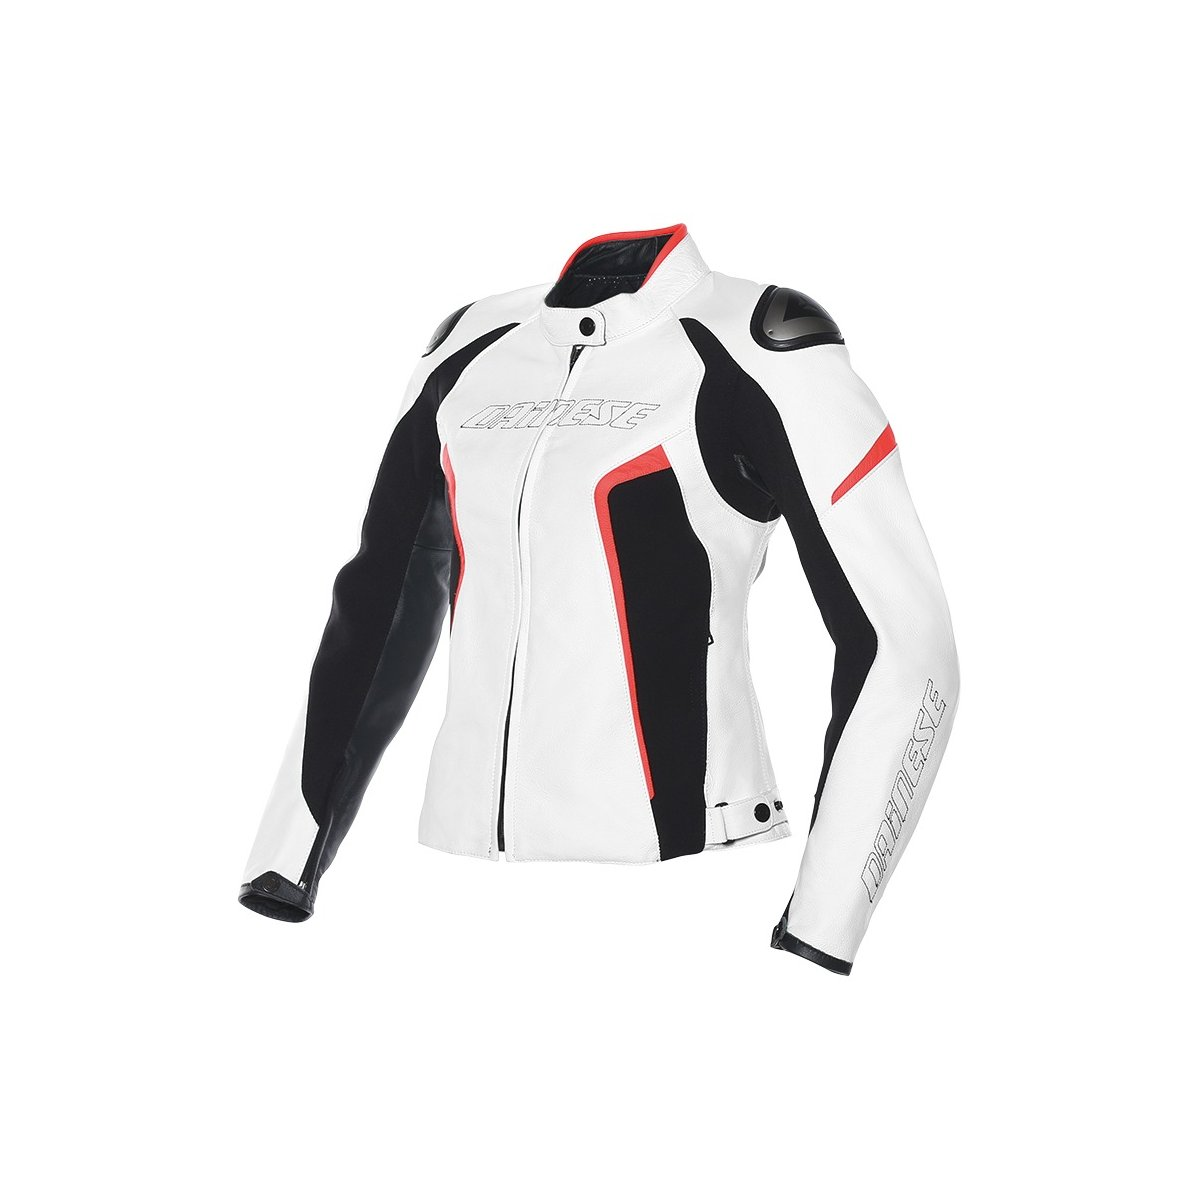 12868a1cfe9 Details about Dainese Racing D1 Womens Leather Jacket White Black Fluo Red  42 Euro 4 USA